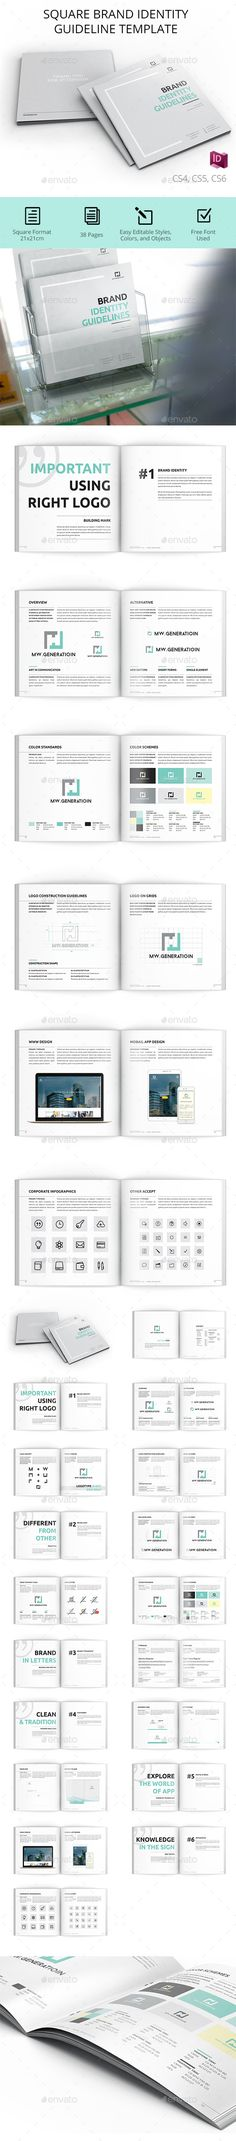 Brand Manual Template Indesign Indd   Pages A  Diseo